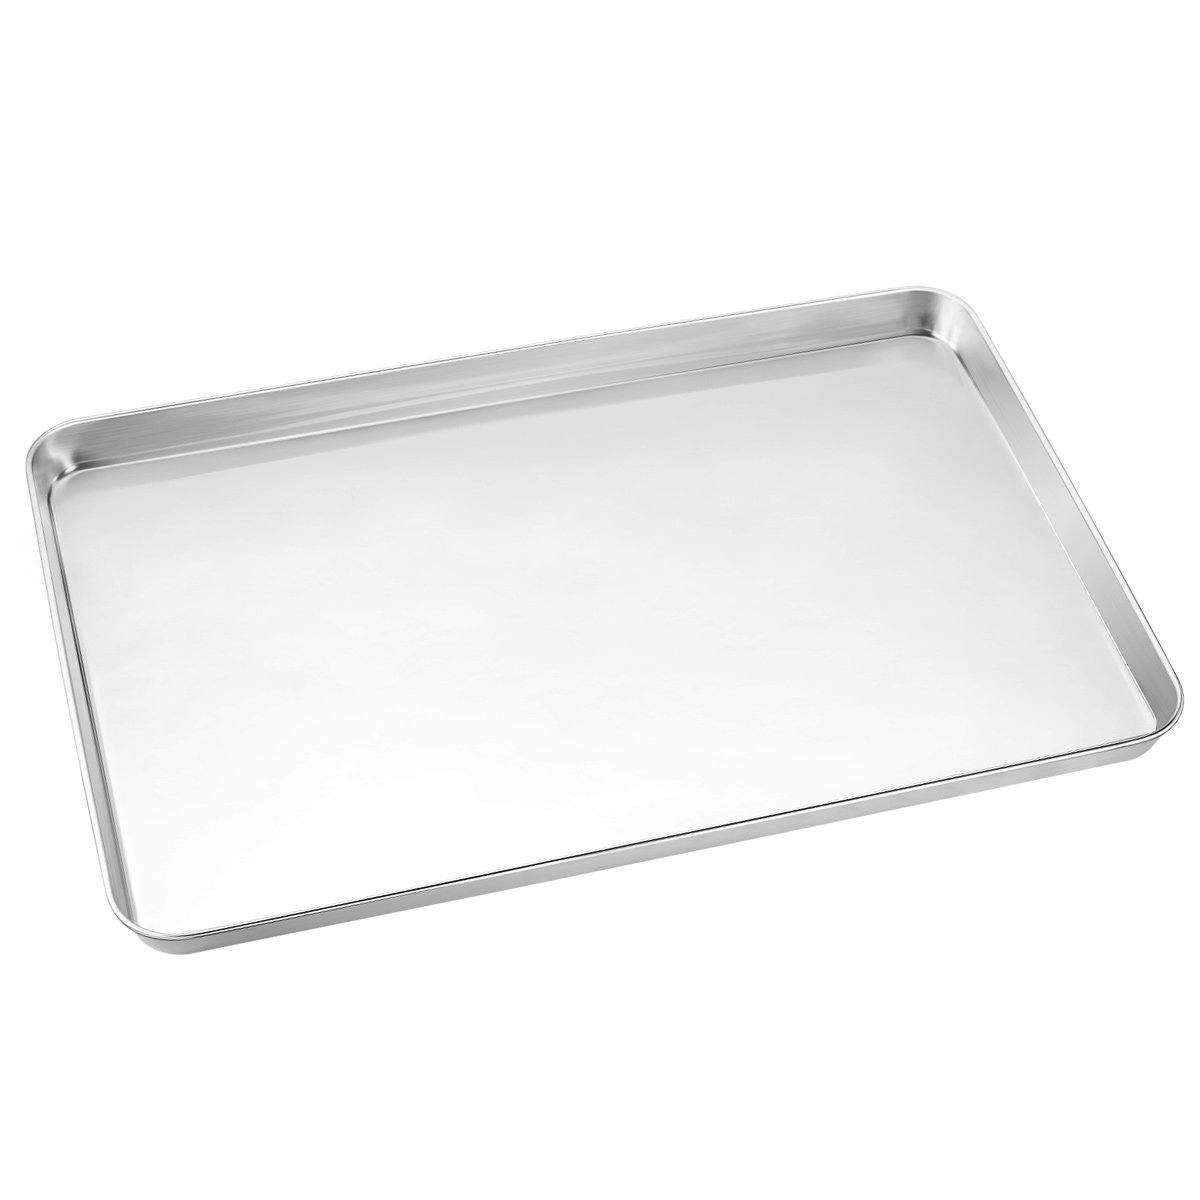 Large Baking Sheets, HKJ Chef Baking Pans & Stainless Steel Cookie Sheets & Toaster Oven Tray Pans, Rectangle Size 24L x 16W x 1H inch & Non Toxic & Healthy,Superior Mirror & Easy Clean by HKJ Chef